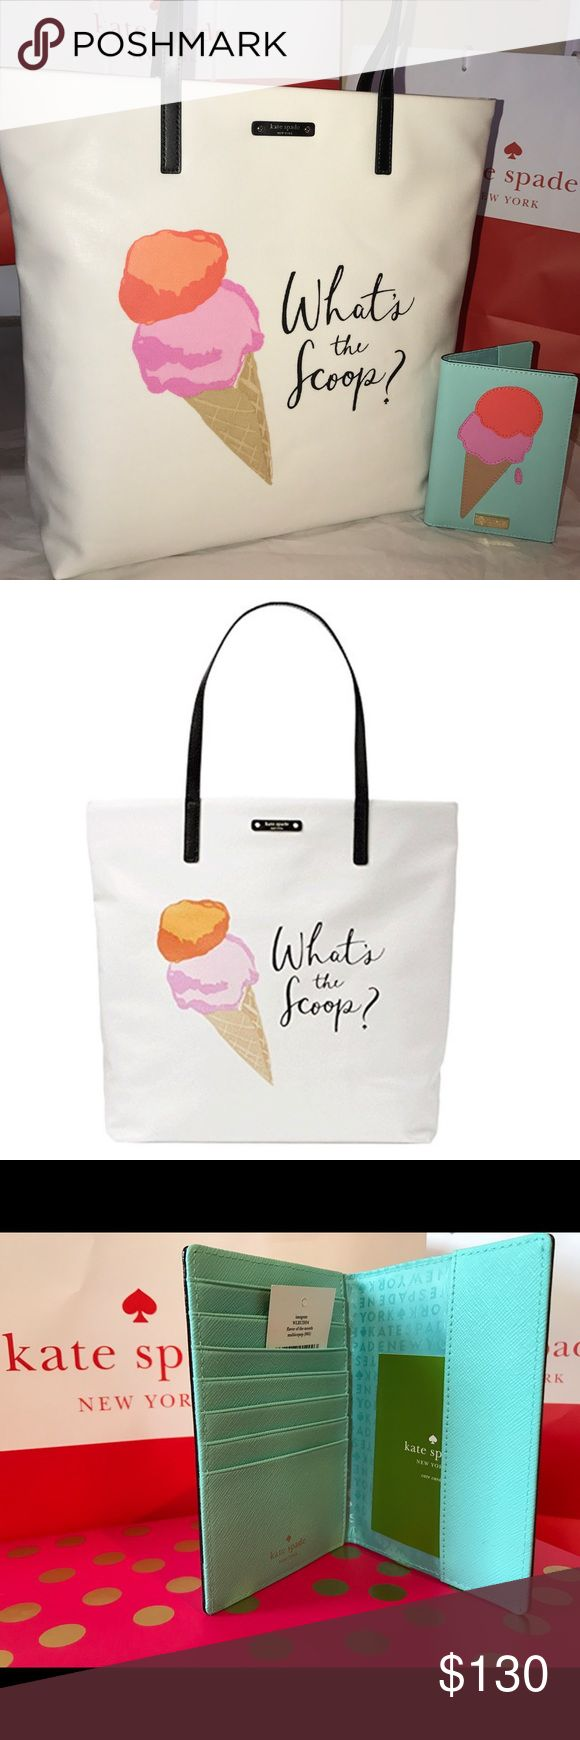 """Kate Spade Ice Cream Scoop Tote Bag & Card Holder 🍦Approximate dimensions: 15"""" w x 13.5"""" h x 5"""" d; 8"""" handle drop Coated canvas with patent pvc trim Capital Kate jacquard lining; Dual interior slide pockets Shoulder bag with an open top🍦.                                   Description for Wallet: 🍦 Engraved raised Kate Spade nameplate on front Leather. Kate Spade fabric interior features7 credit card slots. kate spade Bags Totes"""